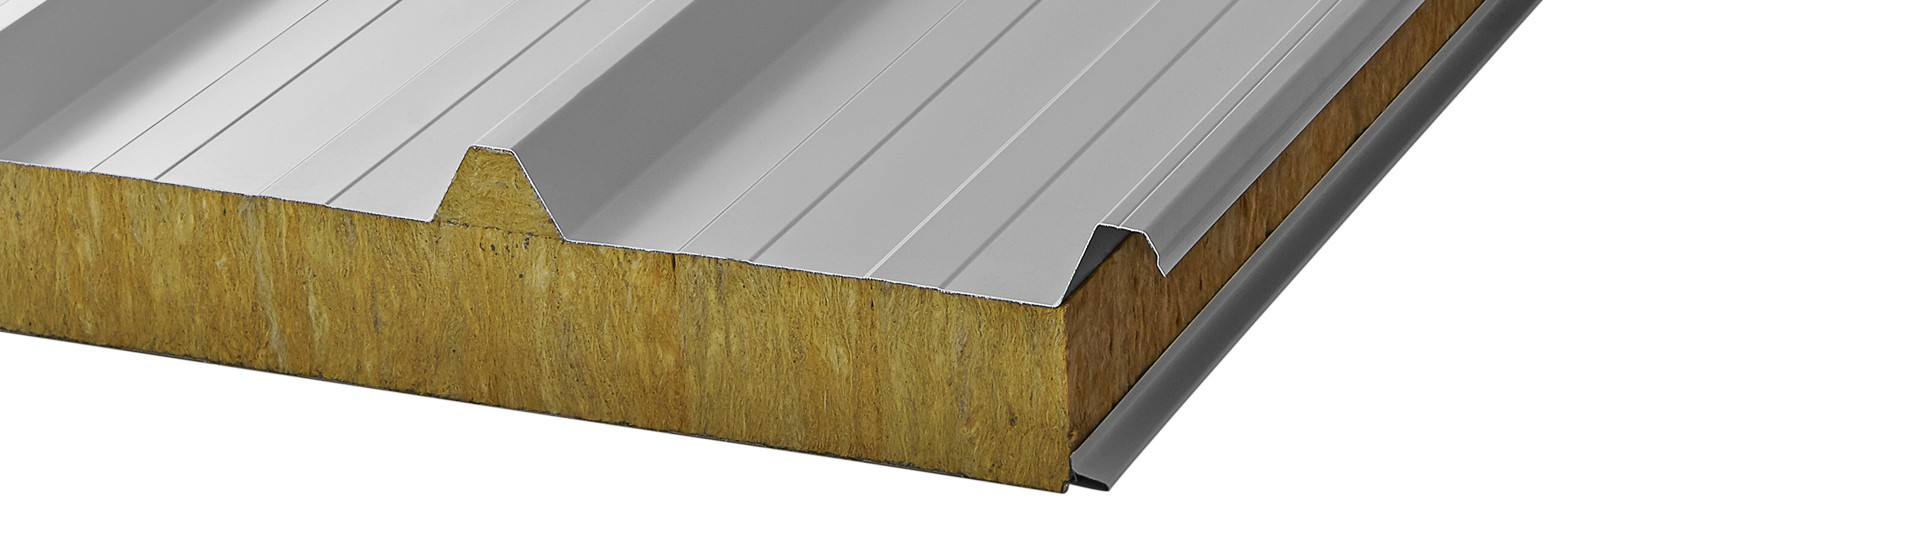 Mw R Roofing Sandwich Panel Mineral Wool Core